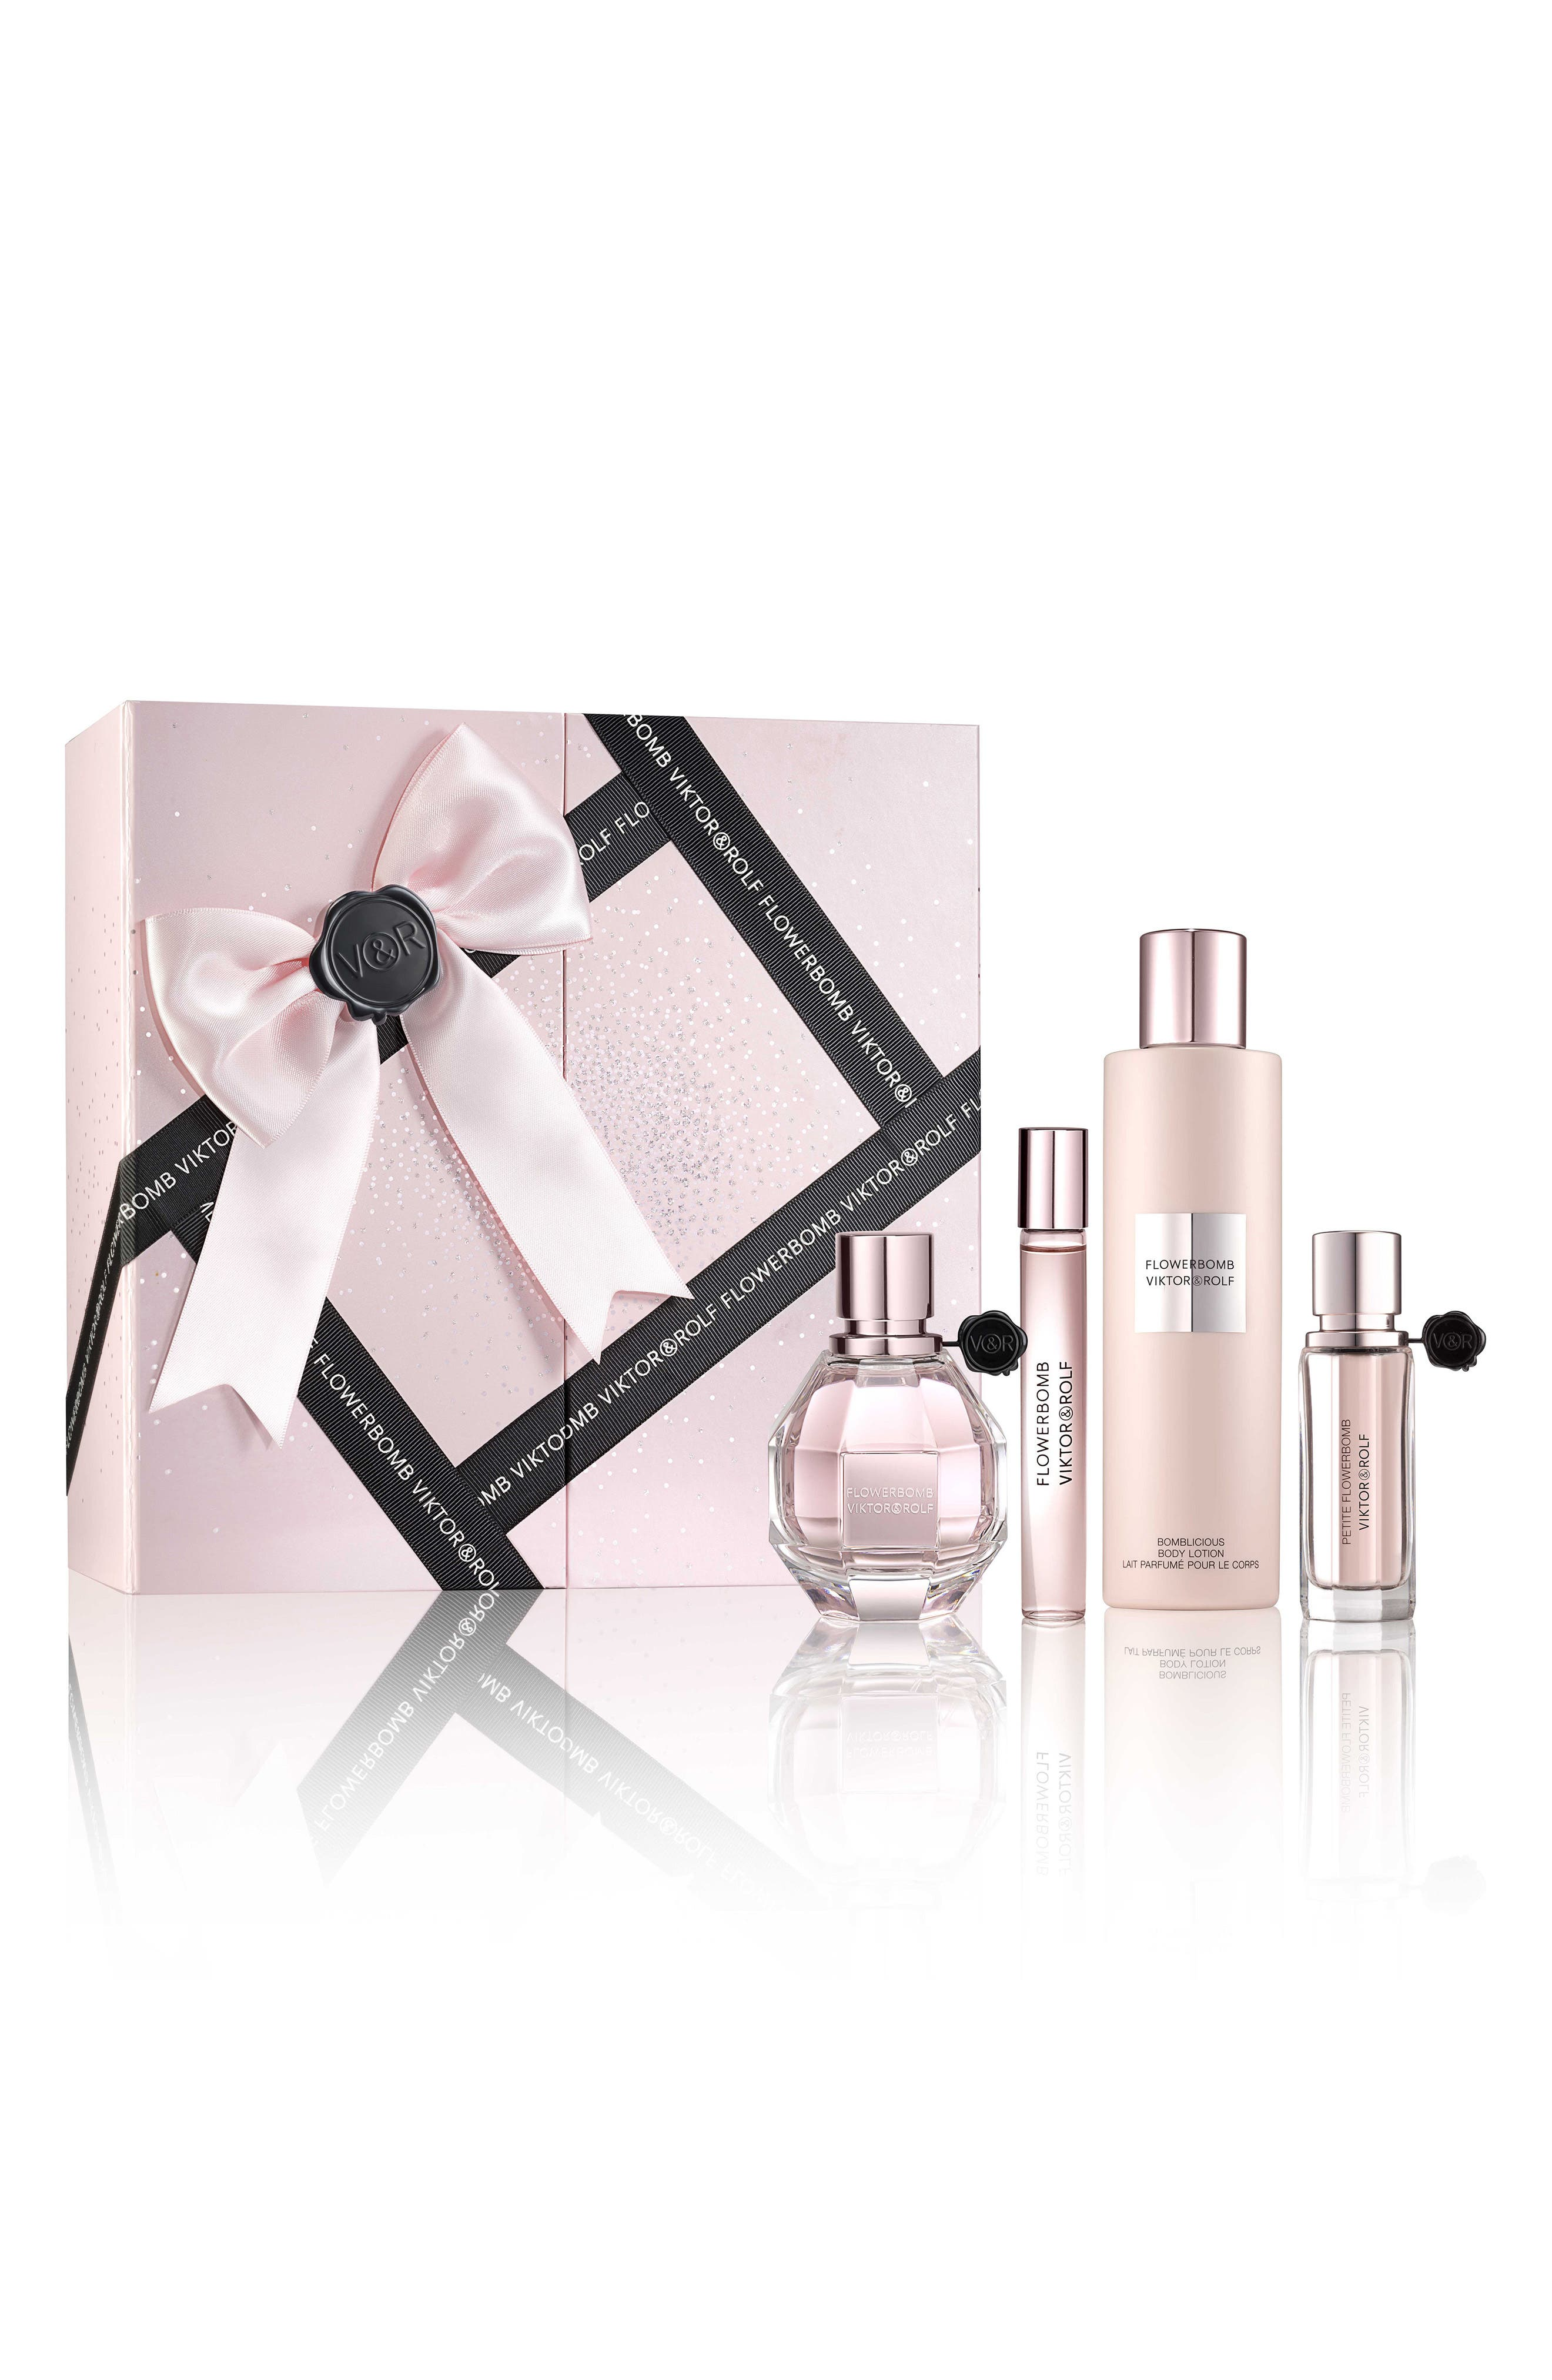 Flowerbomb Four-Piece Luxury Set,                             Main thumbnail 1, color,                             No Color